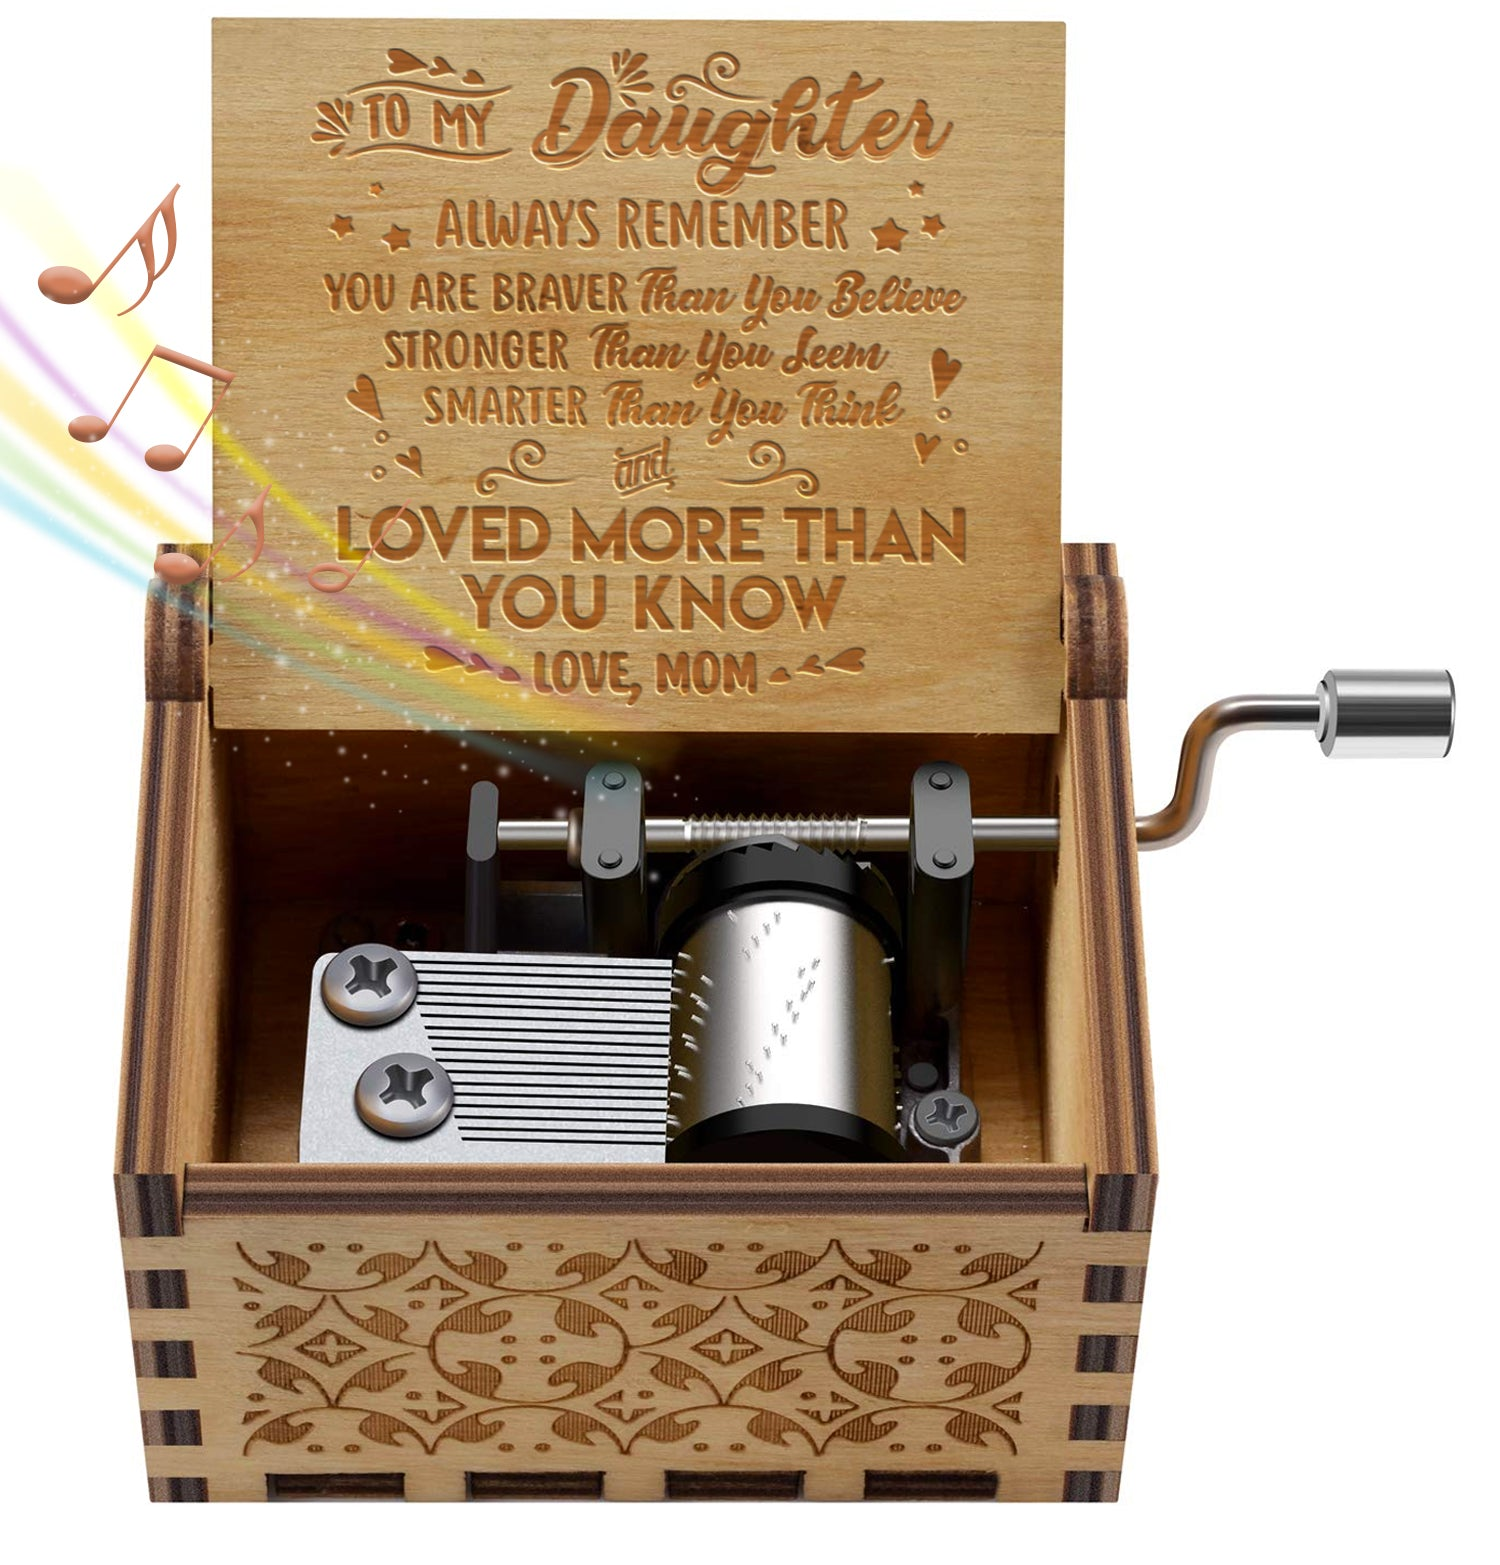 Mom To Daughter - Braver, Stronger, Smarter  - Engraved Music Box